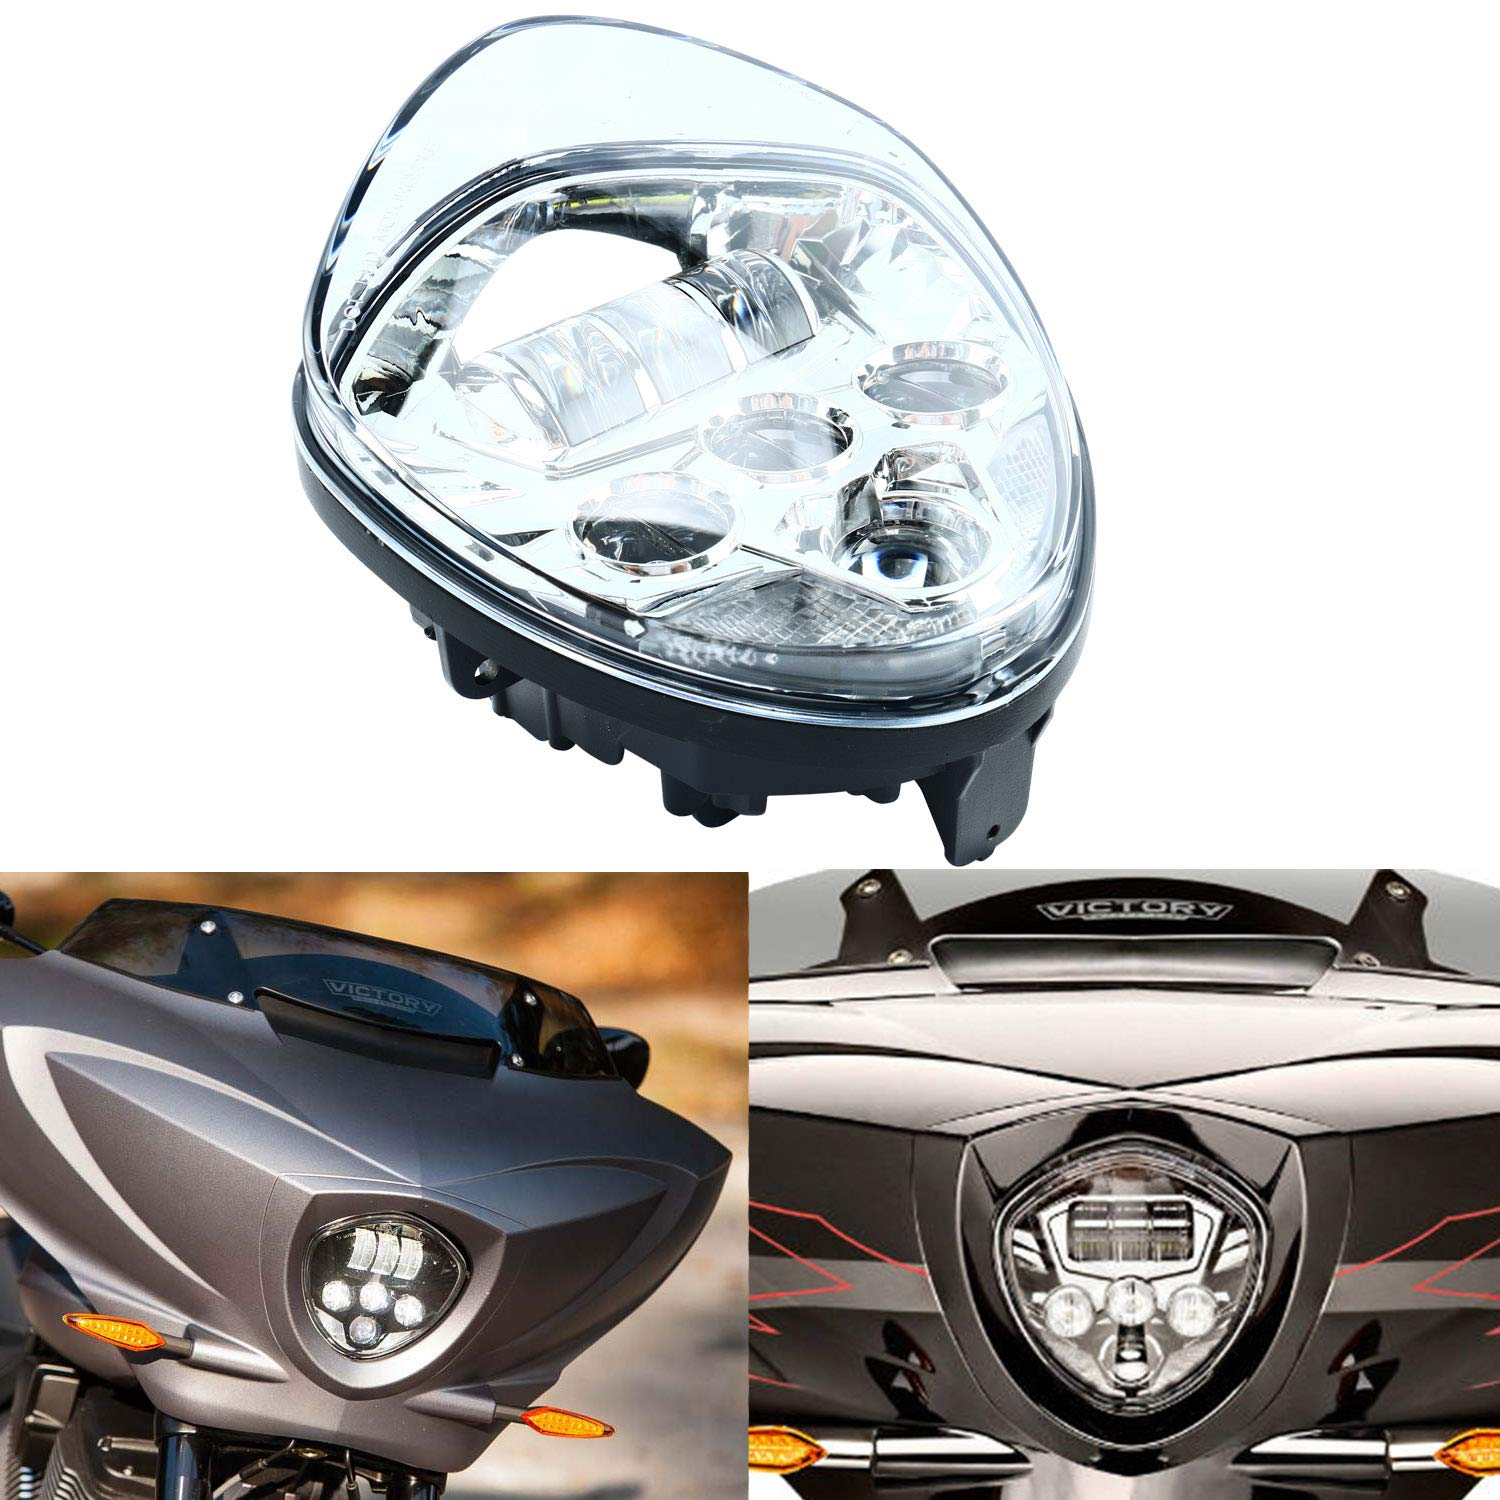 Itd 60w Cree Chip Chrome Motorcycle Headlights Assembly IP67 LED Motorcycle Headlamp Kit for Victory Motorcycle Headlight Accessory LED Motorcycle Lights Victory Motorcycles Cross Country Series Yae First Trading Co